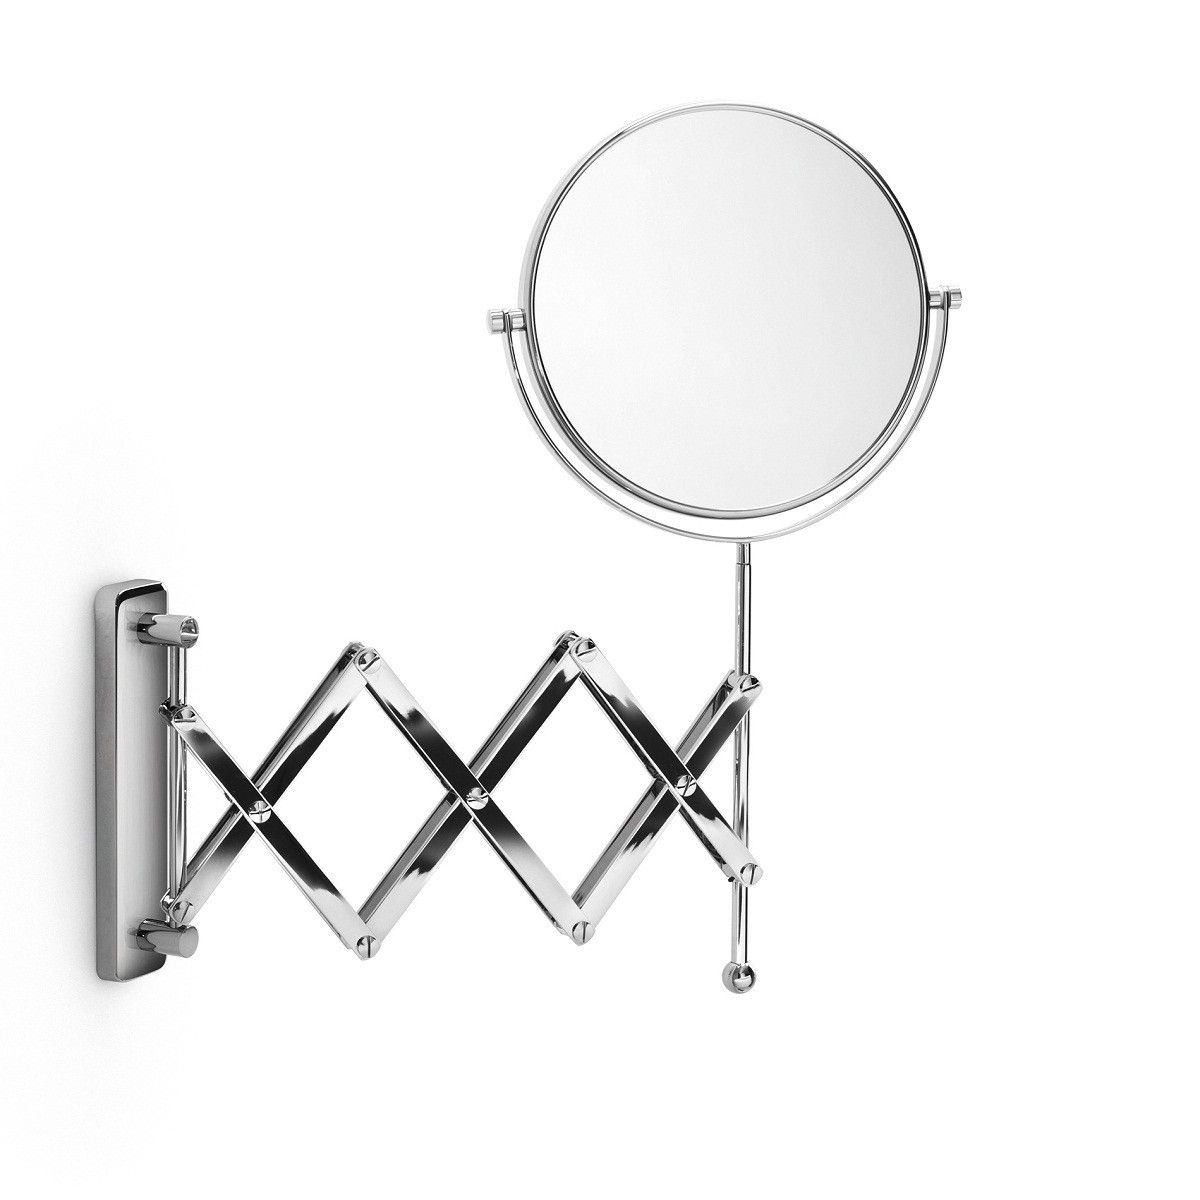 WS Bath Collections Mevedo 55855 Magnifying Mirror 3x From the ...